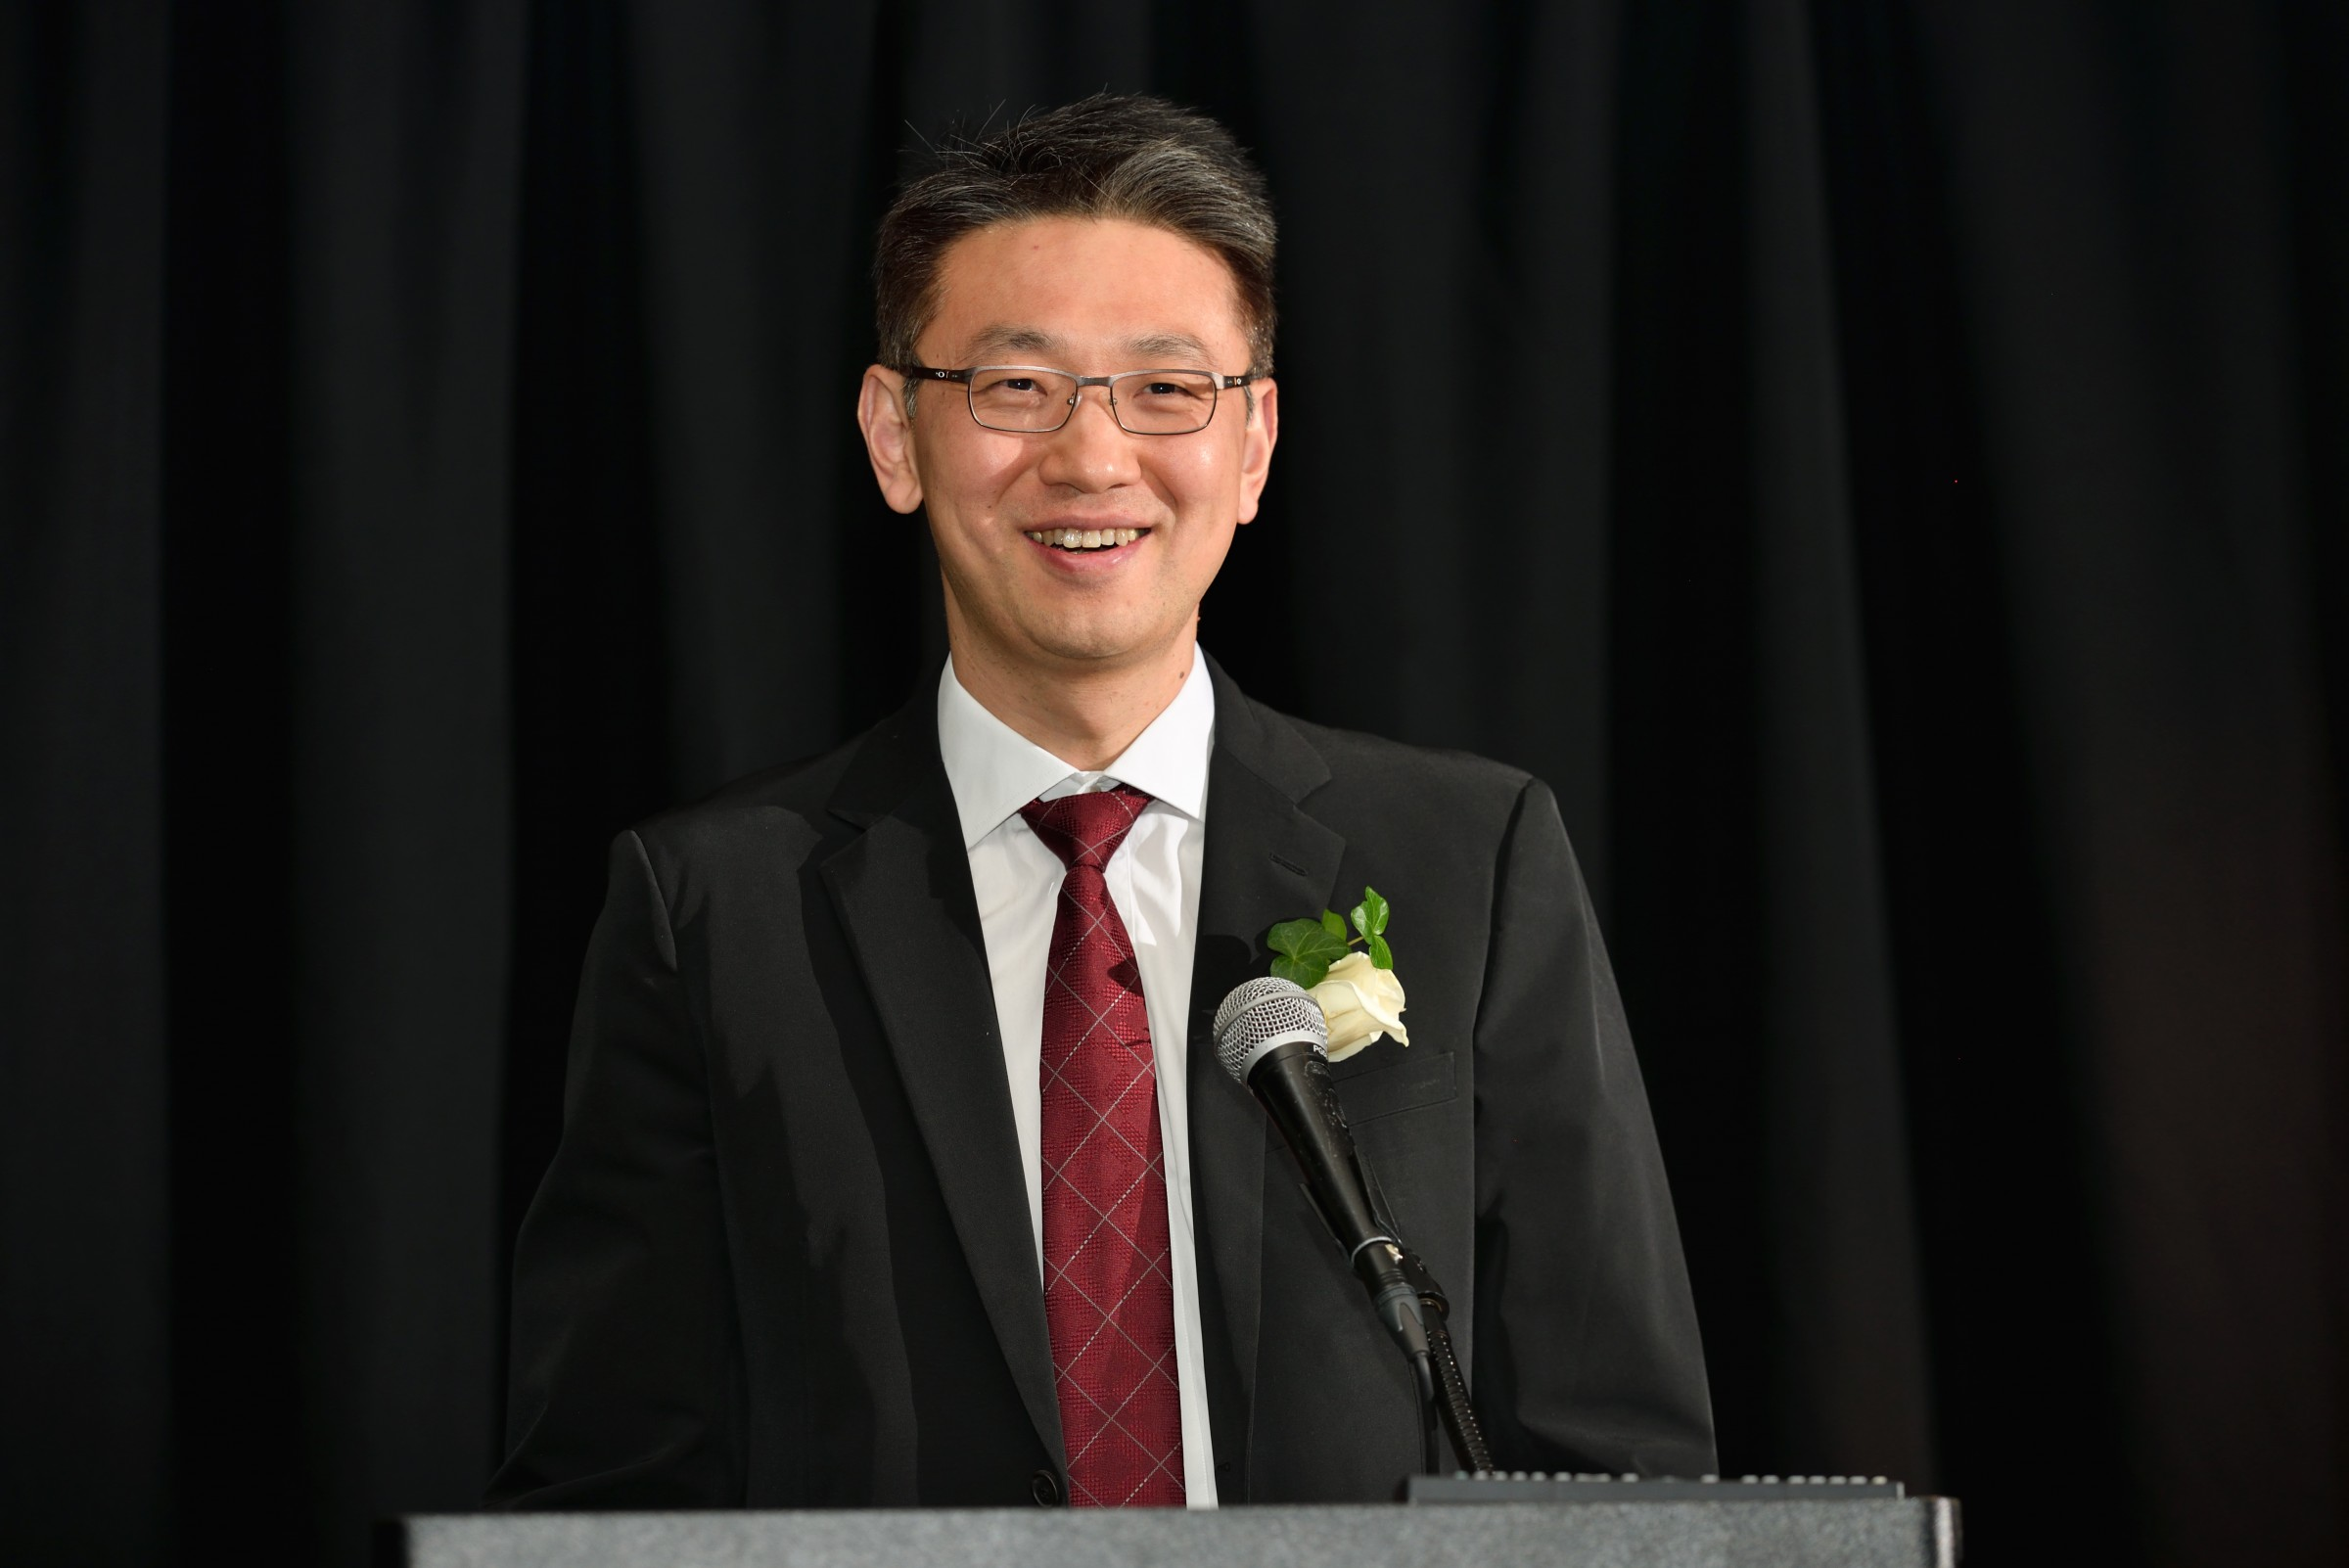 Yunhao Liu received the MSU College of Engineering Computer Science and Engineering Distinguished Alumni Award in May 2017.